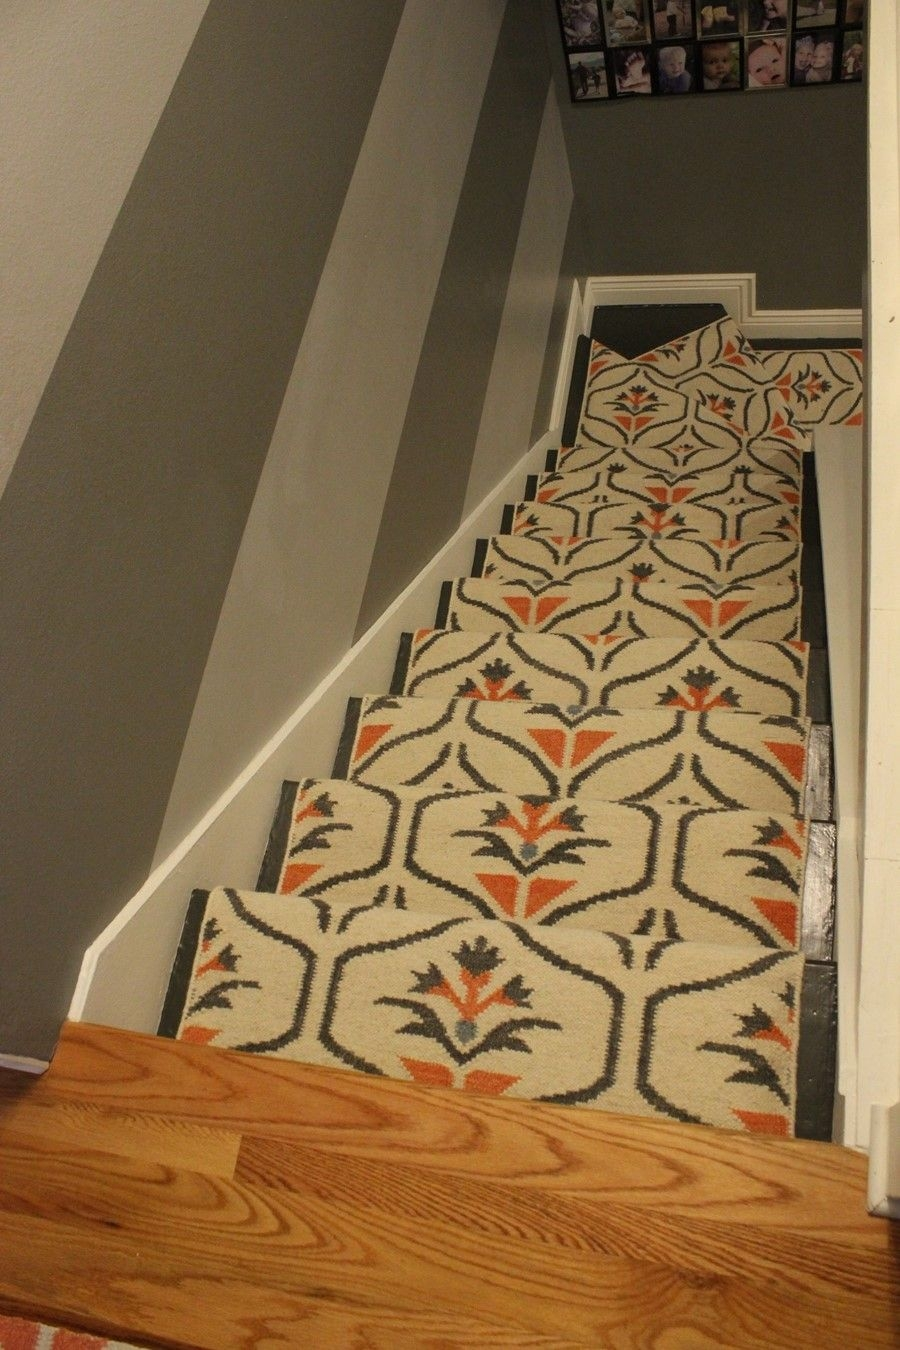 Update Your Staircase How To Remove And Install Carpet On The Stairs | Stair Runners For Carpeted Stairs | Round Corner | Marble | Hardwood | Commercial | Tile Stair